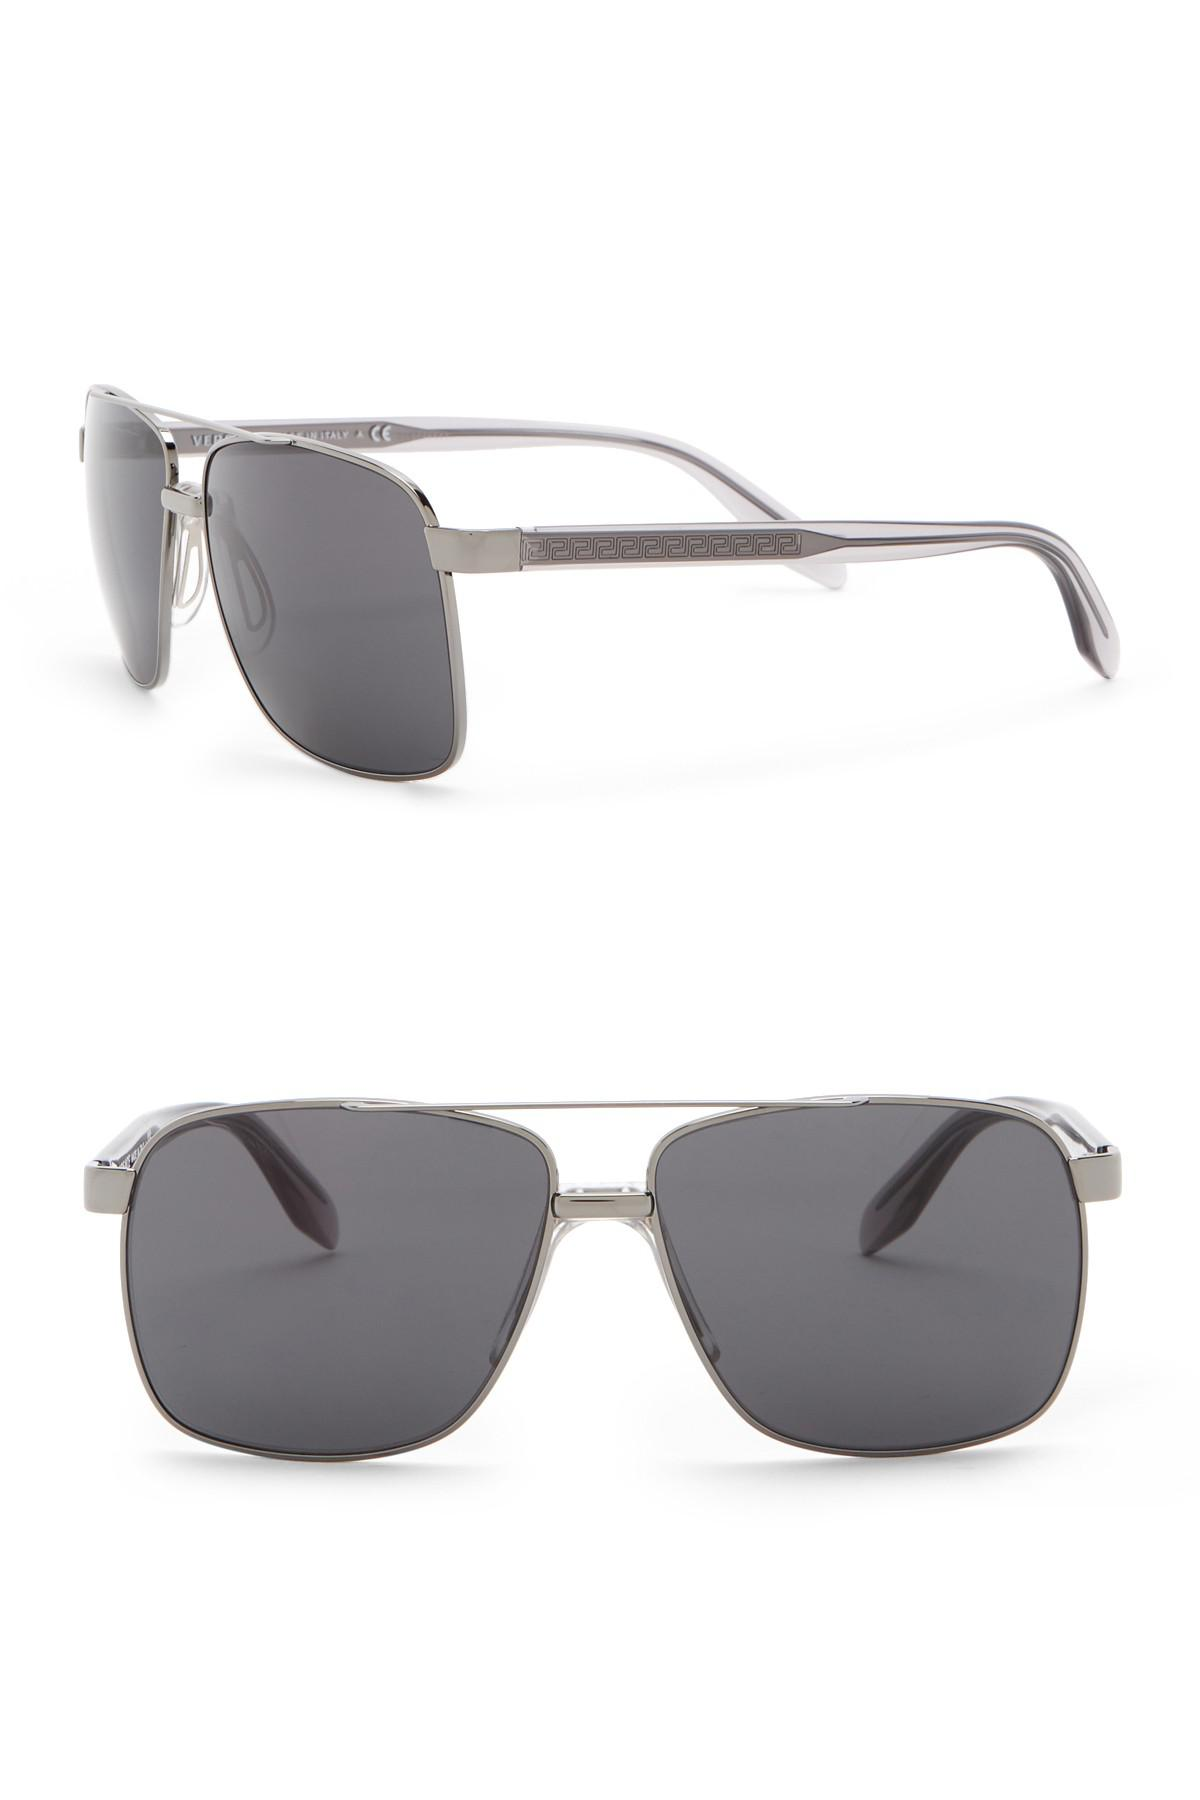 c22048eb9d1d Lyst - Versace 59mm Square Sunglasses in Gray for Men